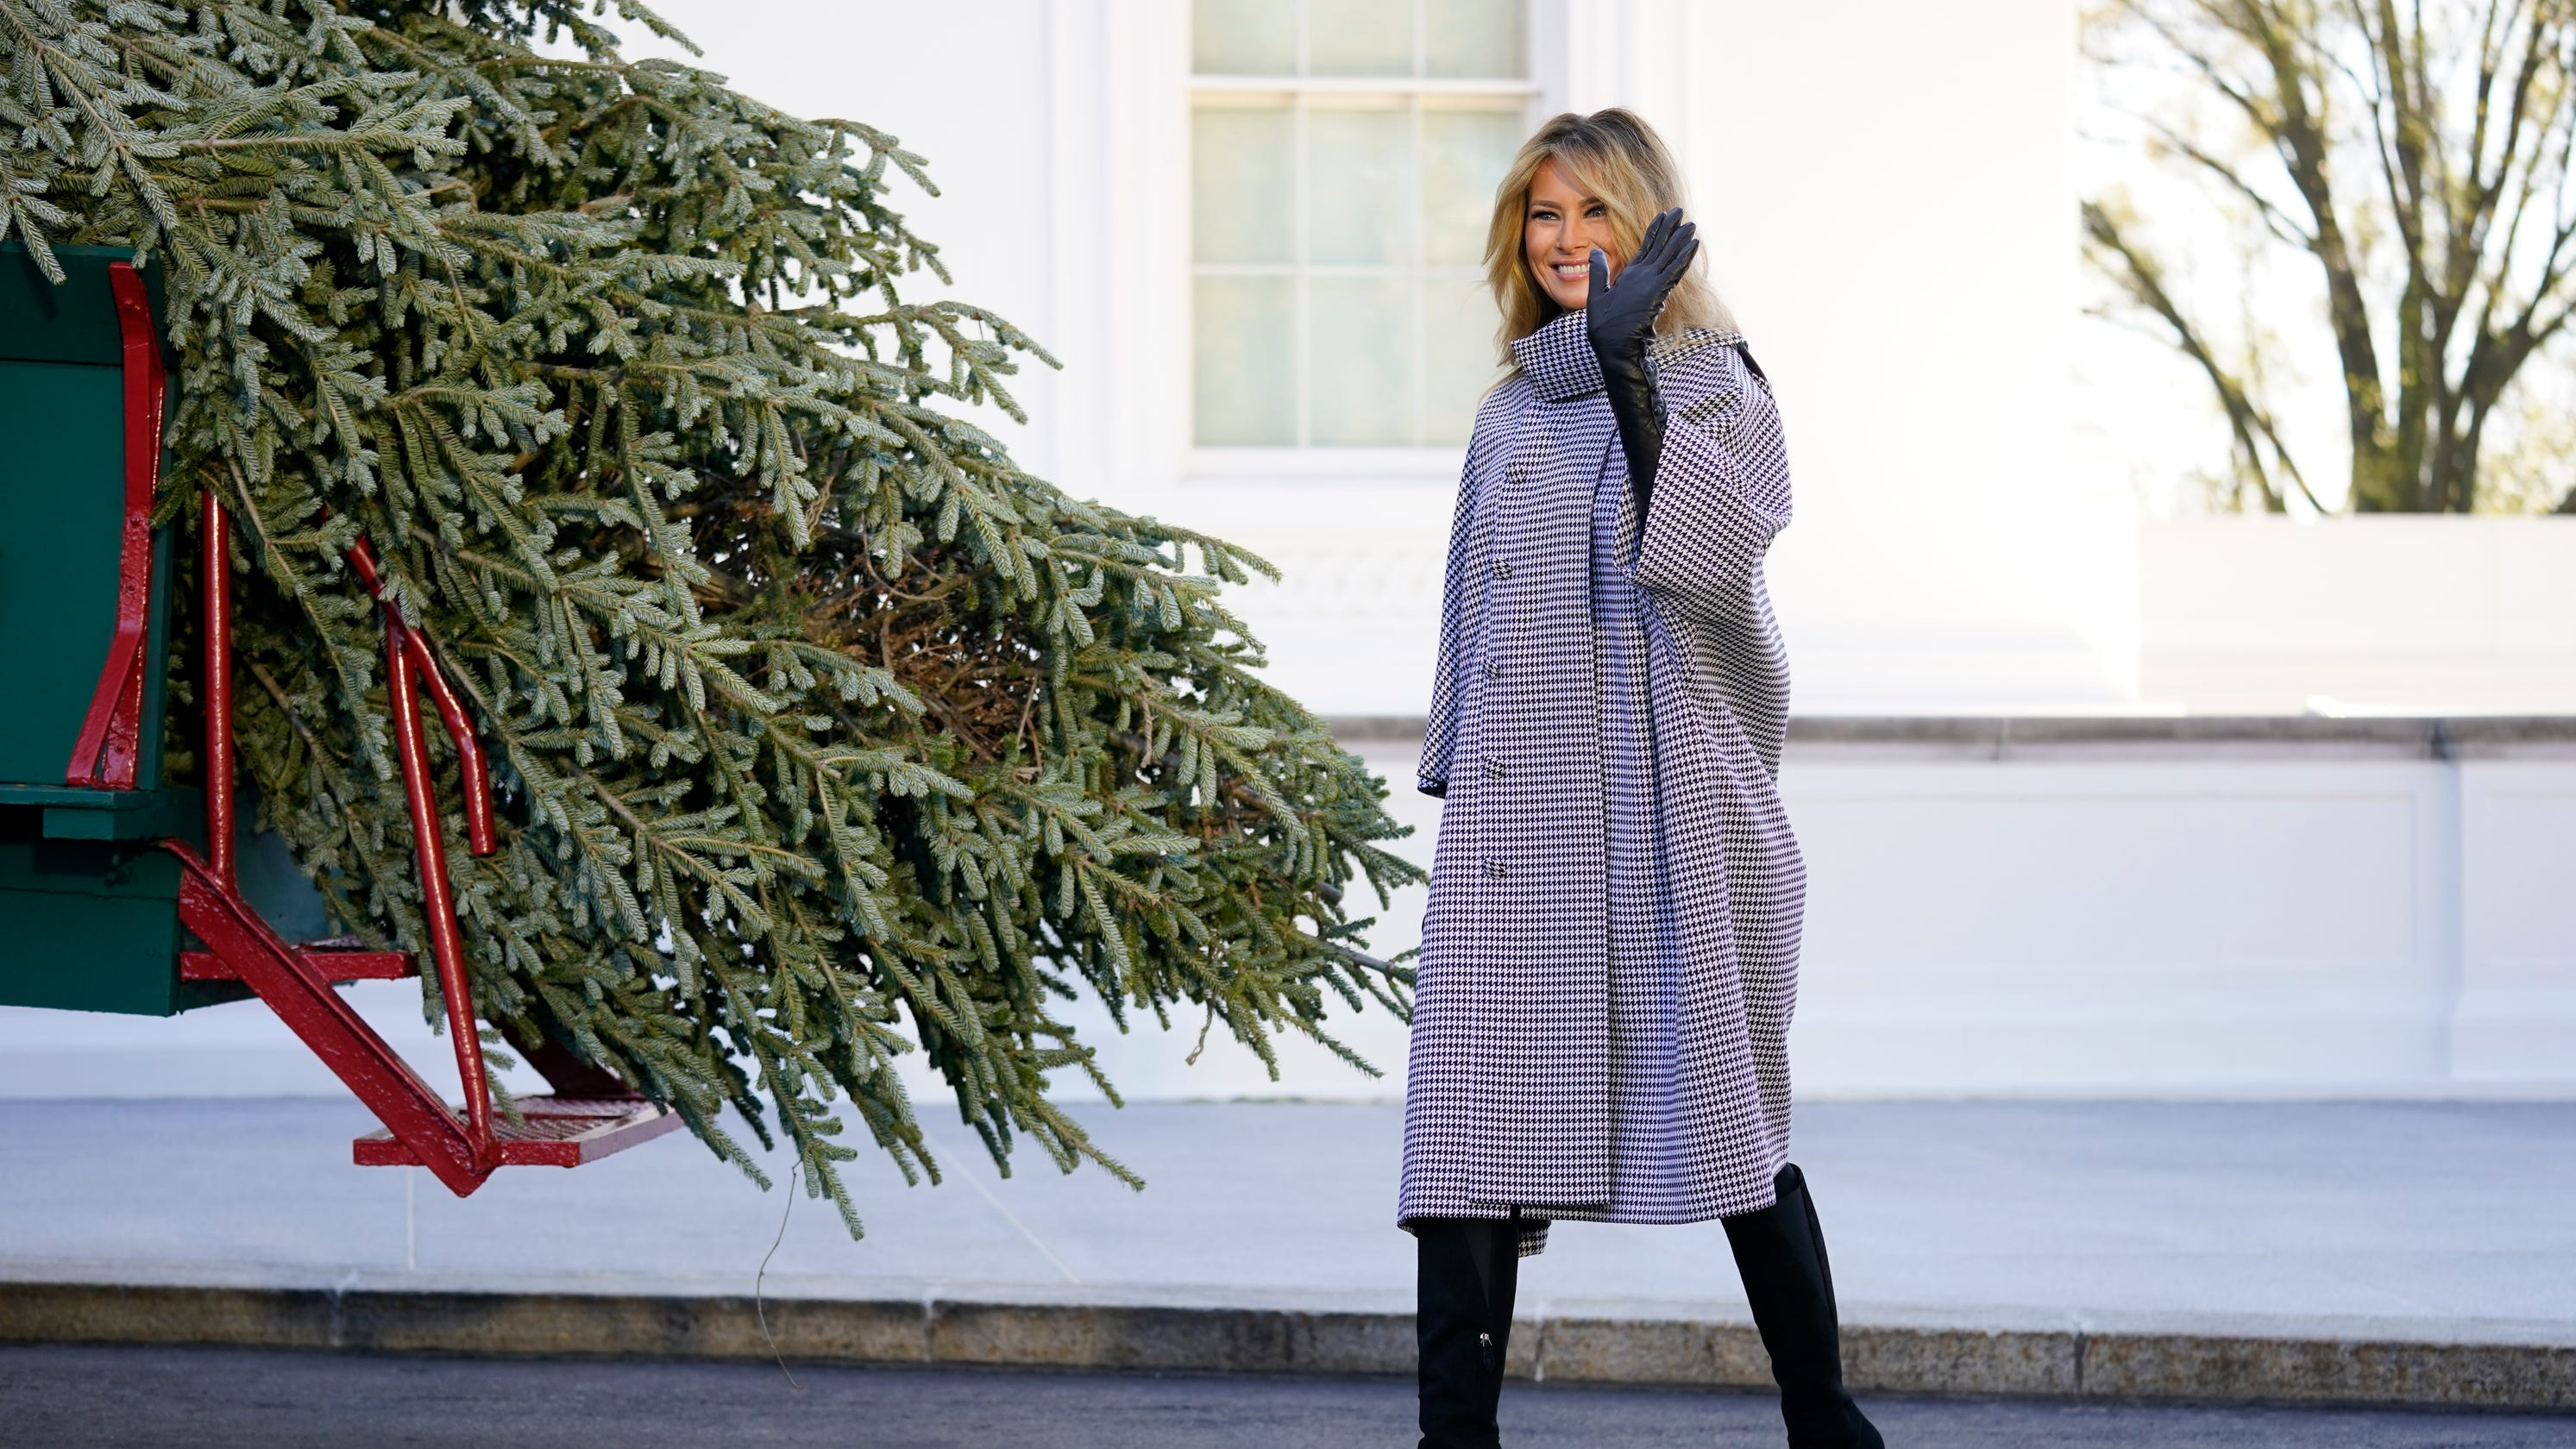 Masks, plexiglass food stations: What Melania Trump is planning for holiday parties amid COVID-19